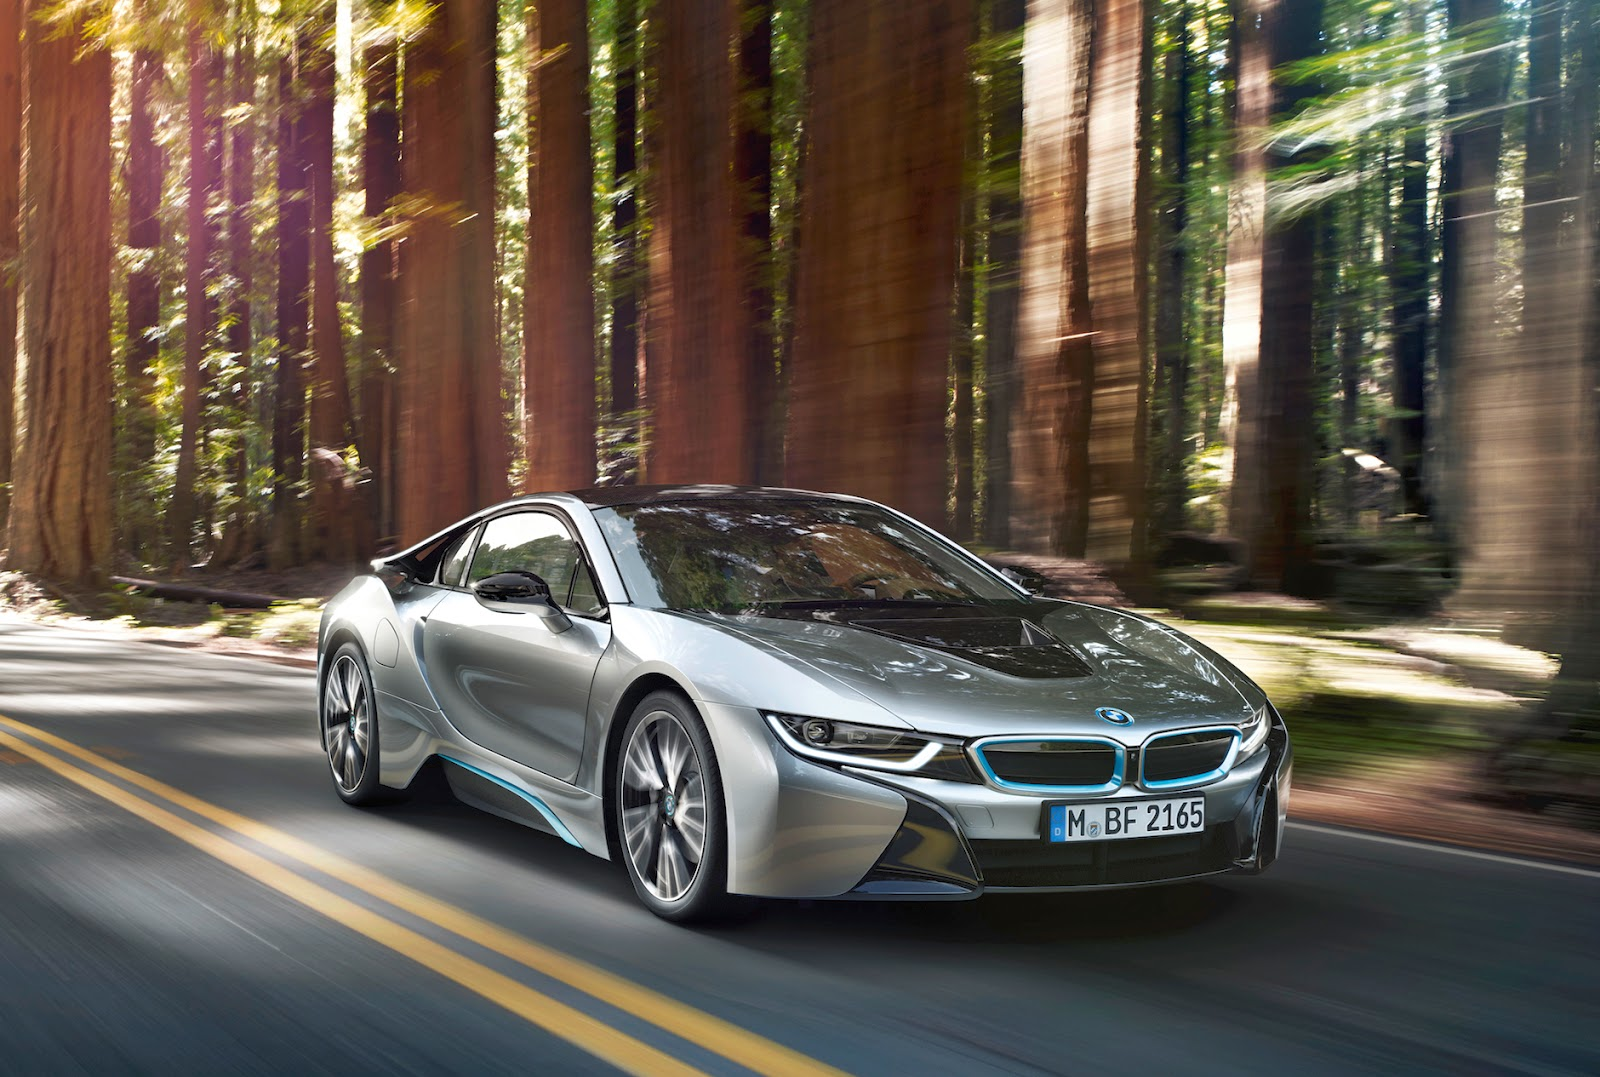 BMW i8 - 2 door electric sports car